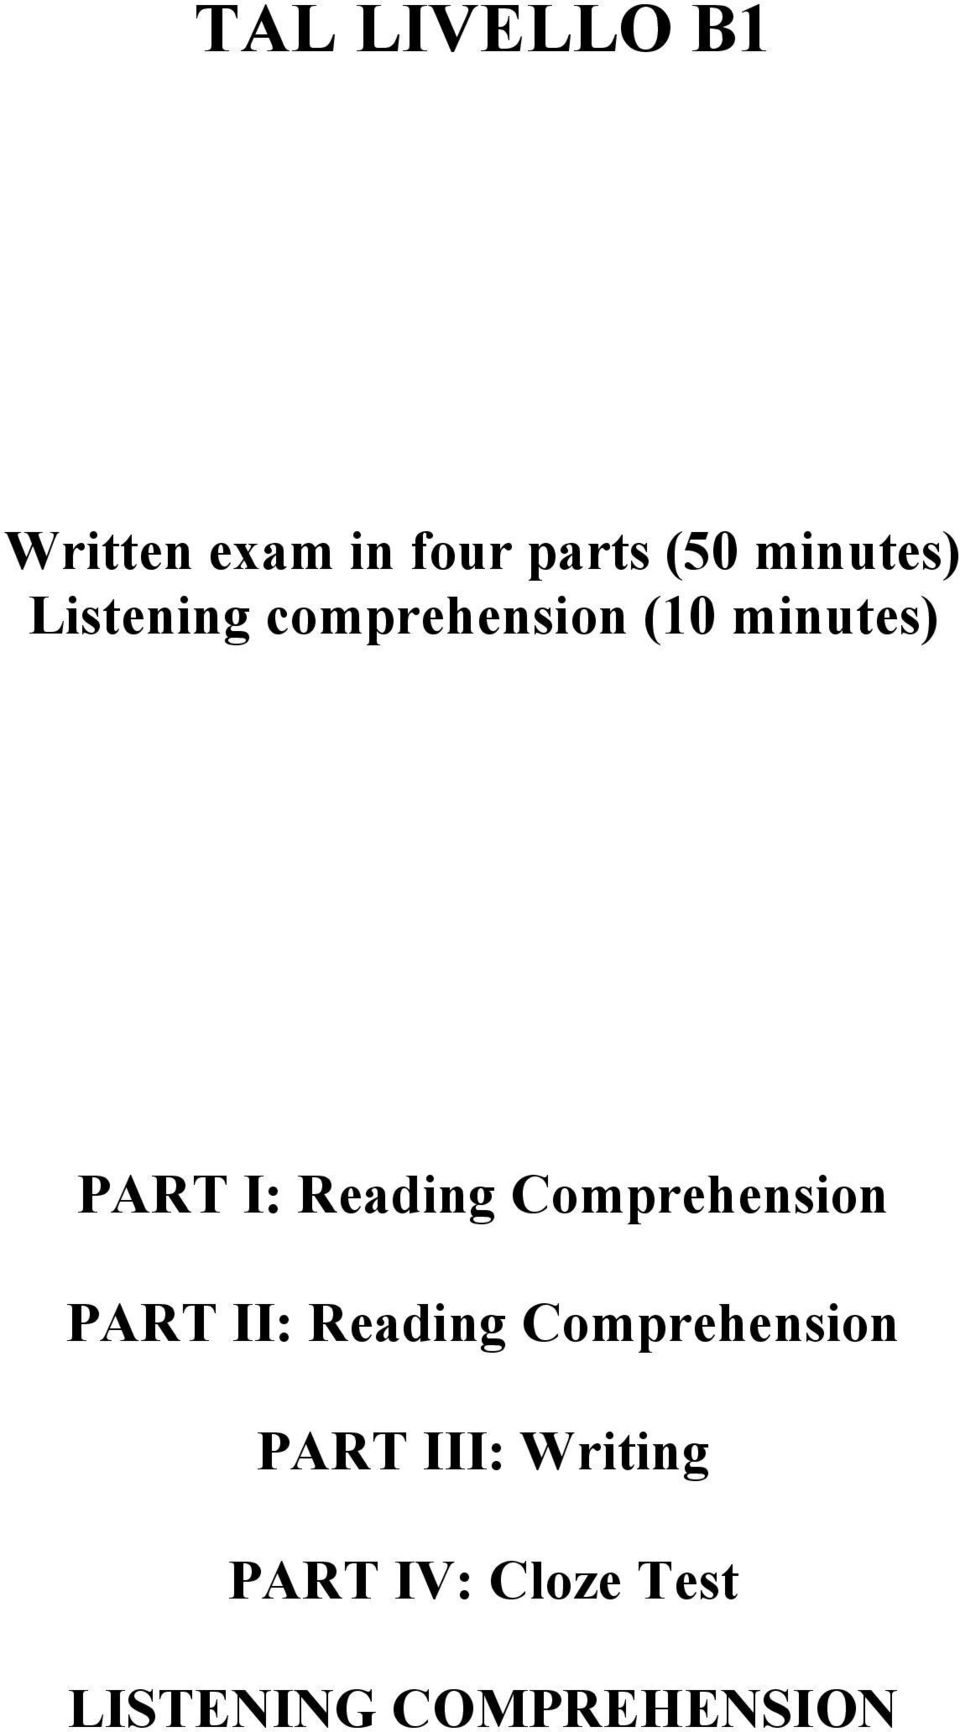 Reading Comprehension PART II: Reading Comprehension